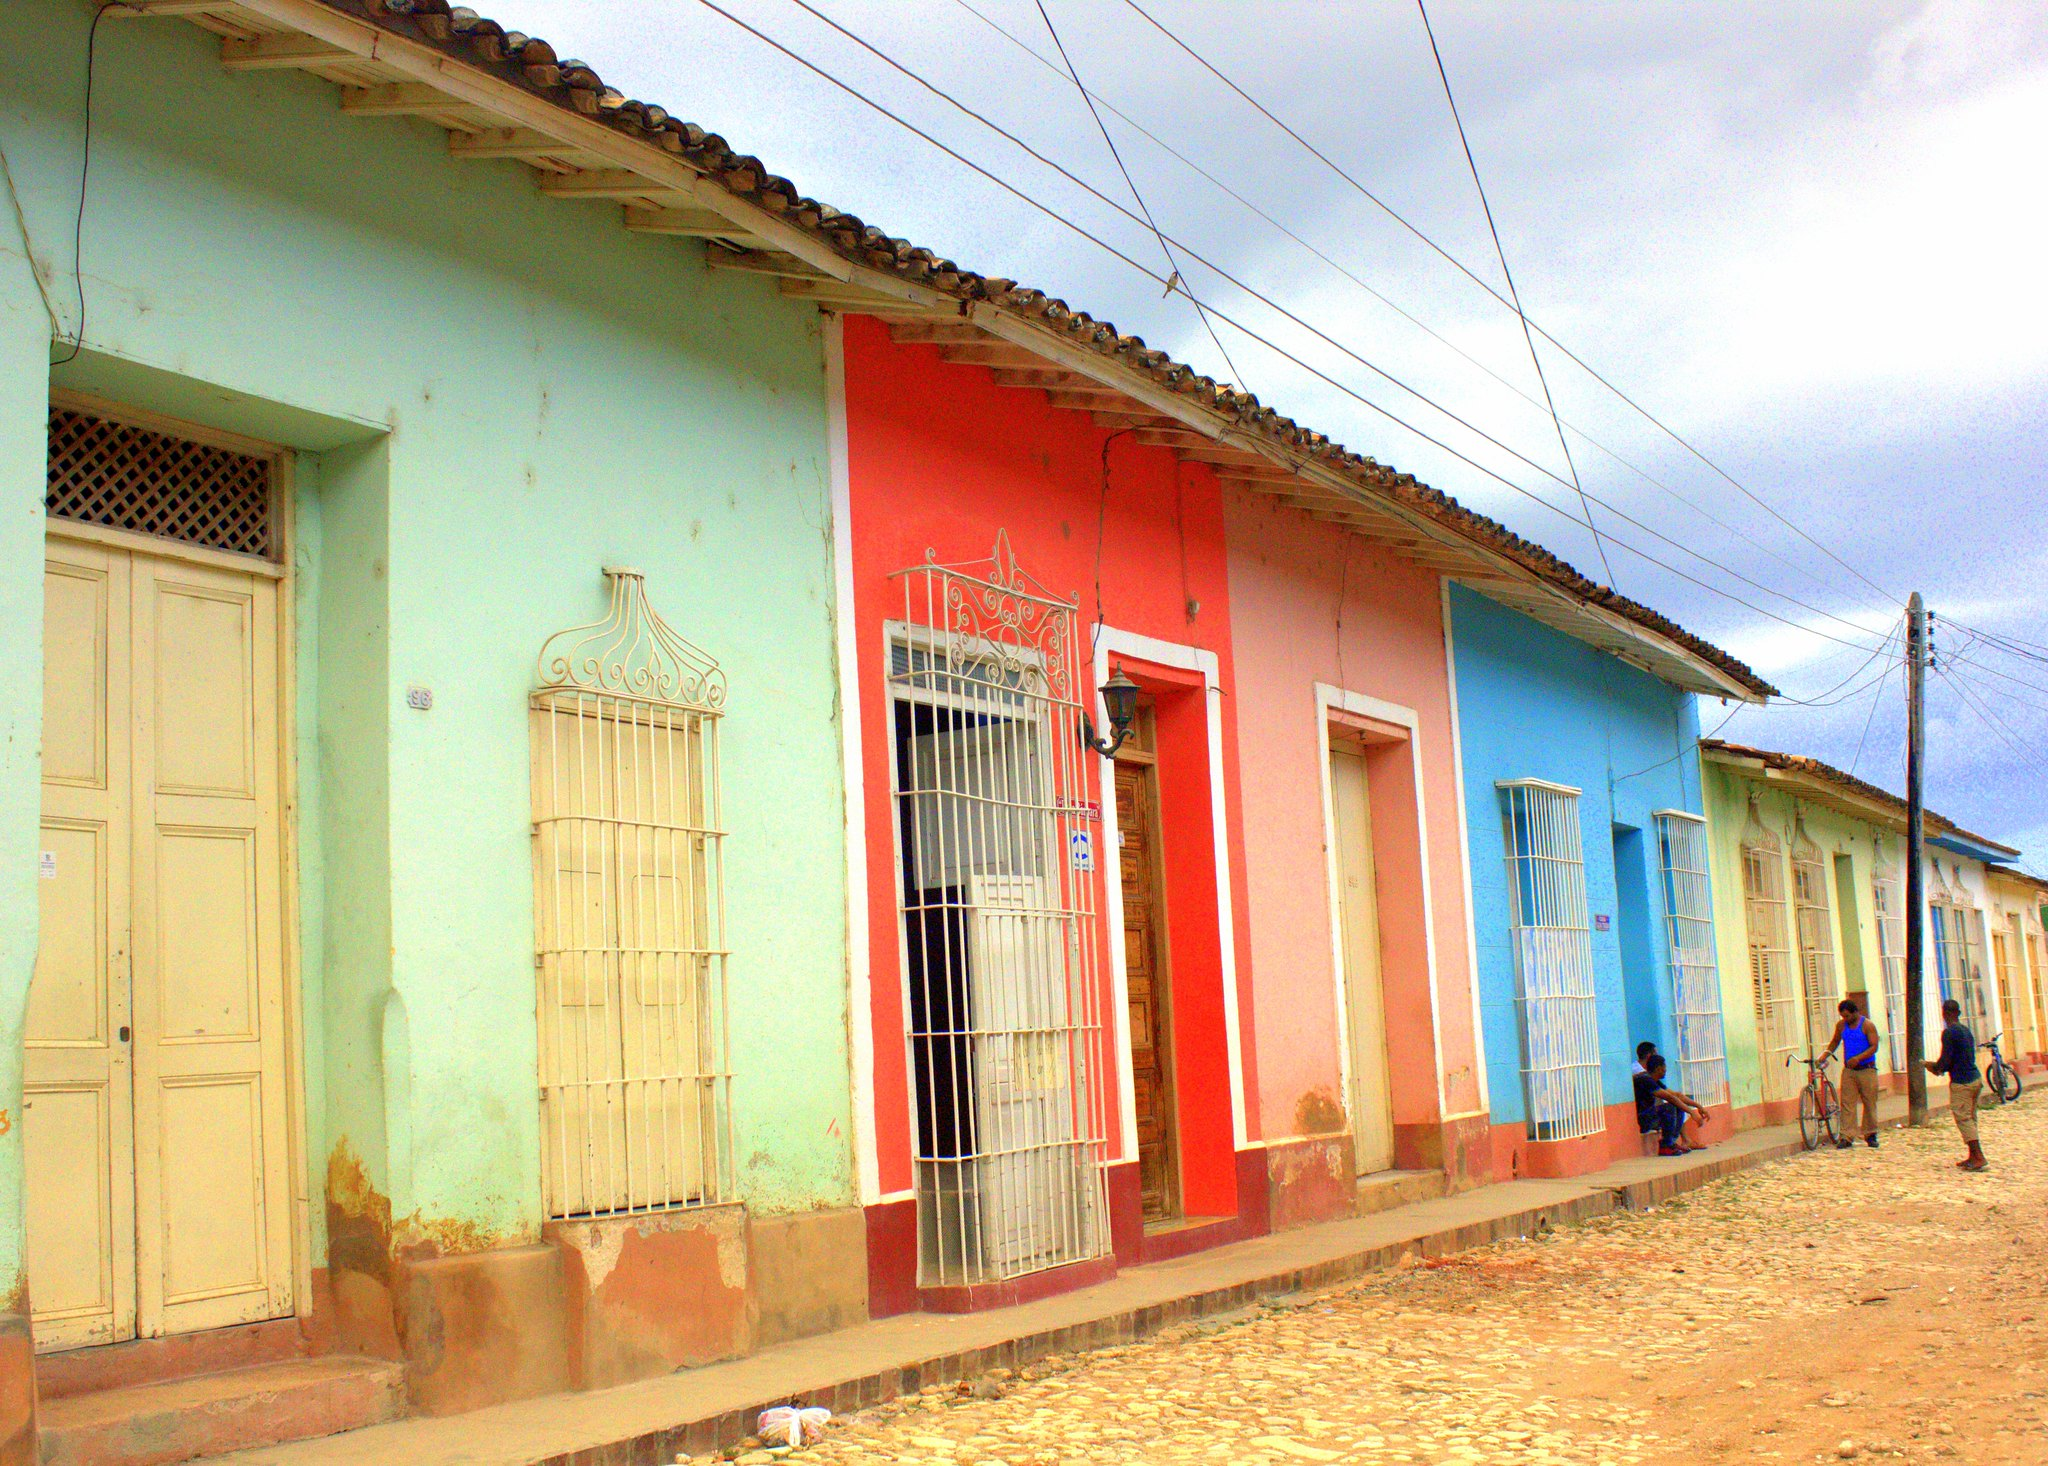 Trinidad is famous for pastel coloured houses